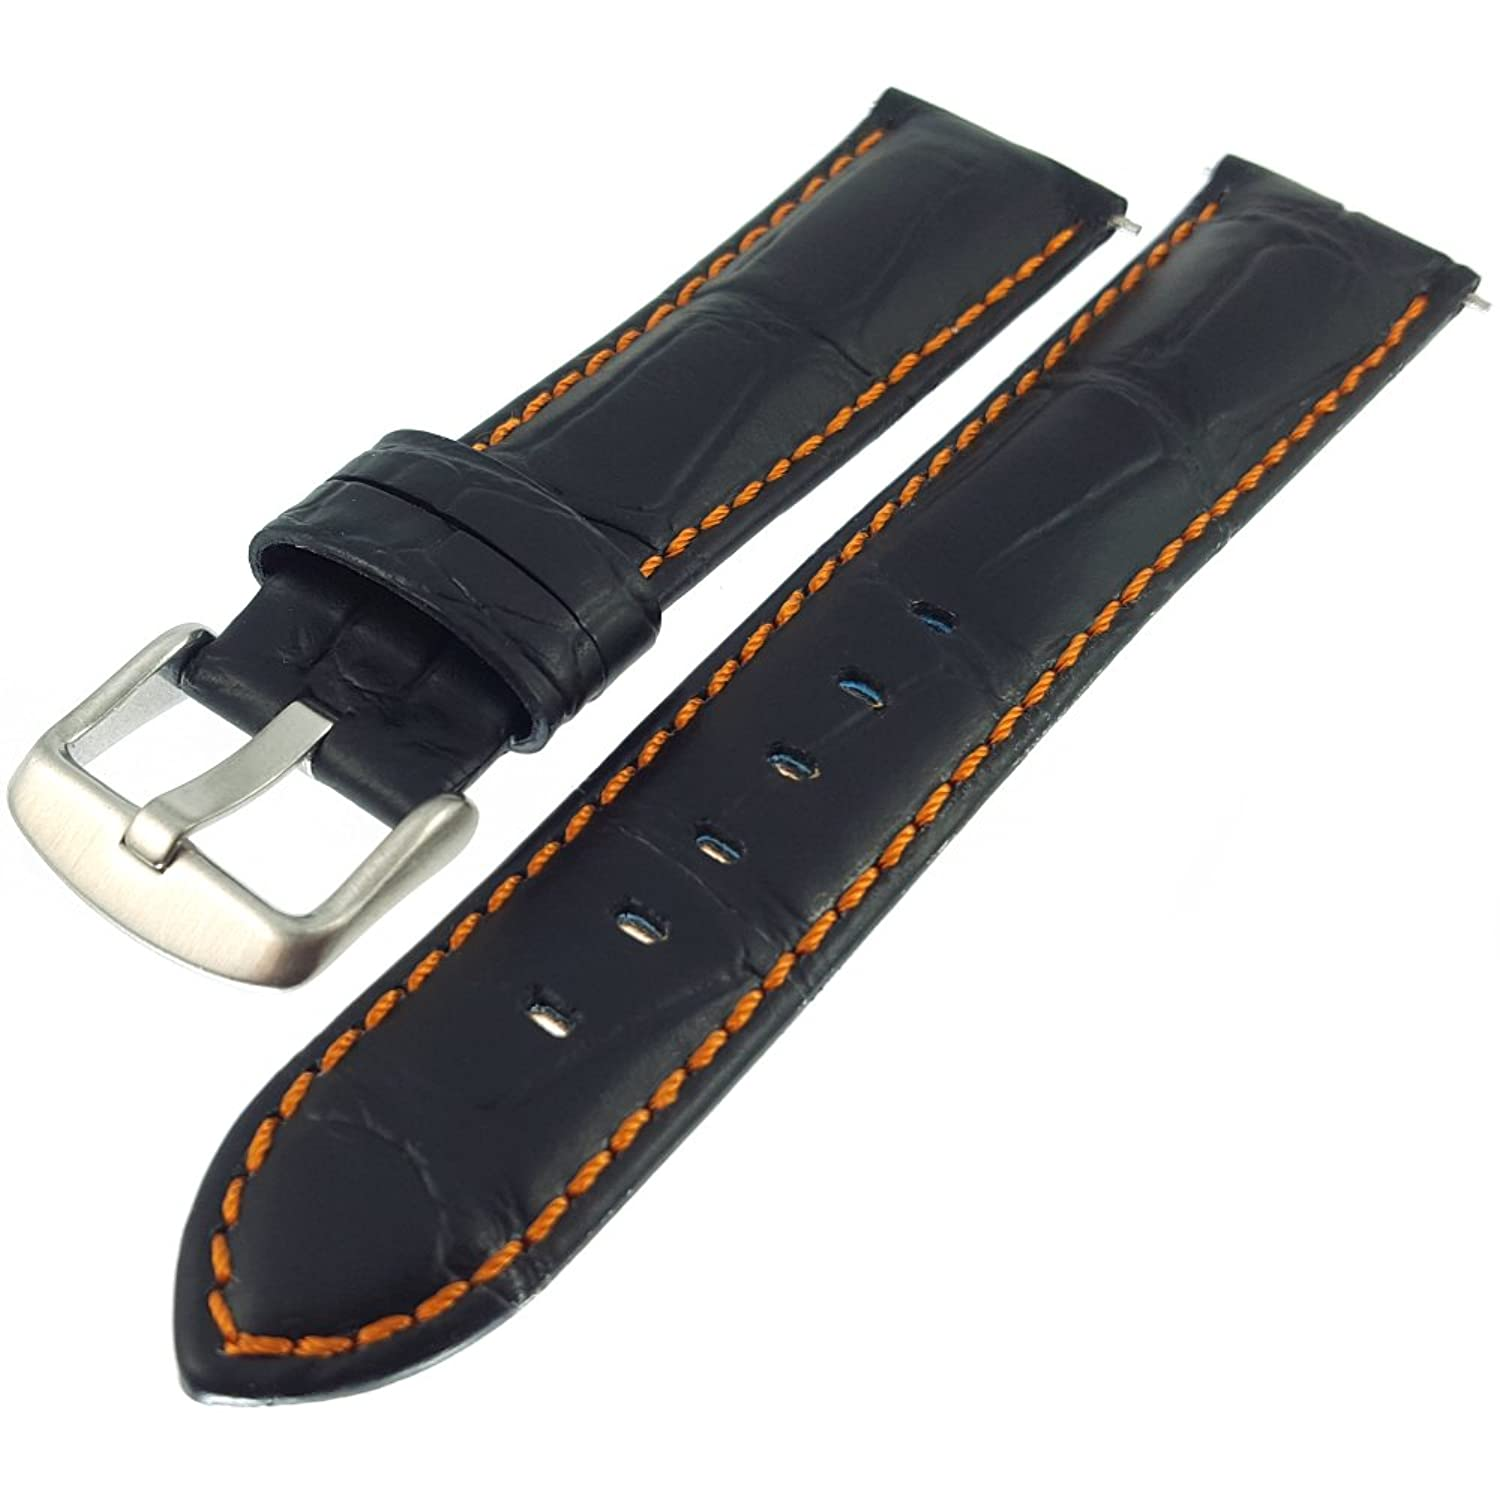 Watchstrap - Black Crocodile Premium Strap with Double Stitching WH513-23